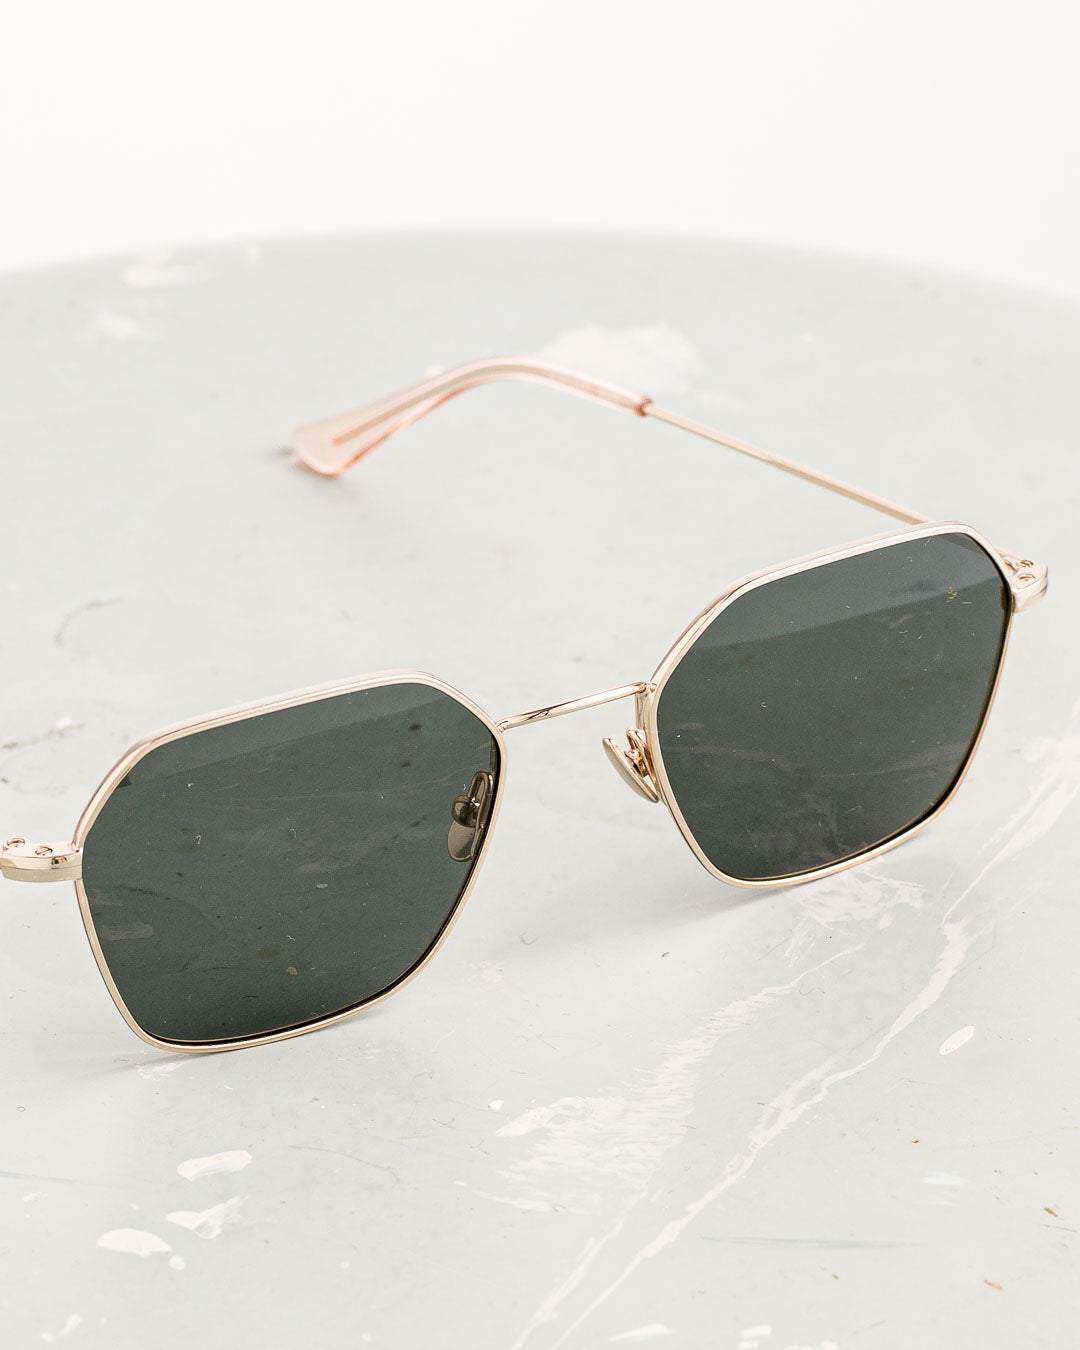 Waiting for the Sun // Sonnenbrille Acapulco Pale Gold